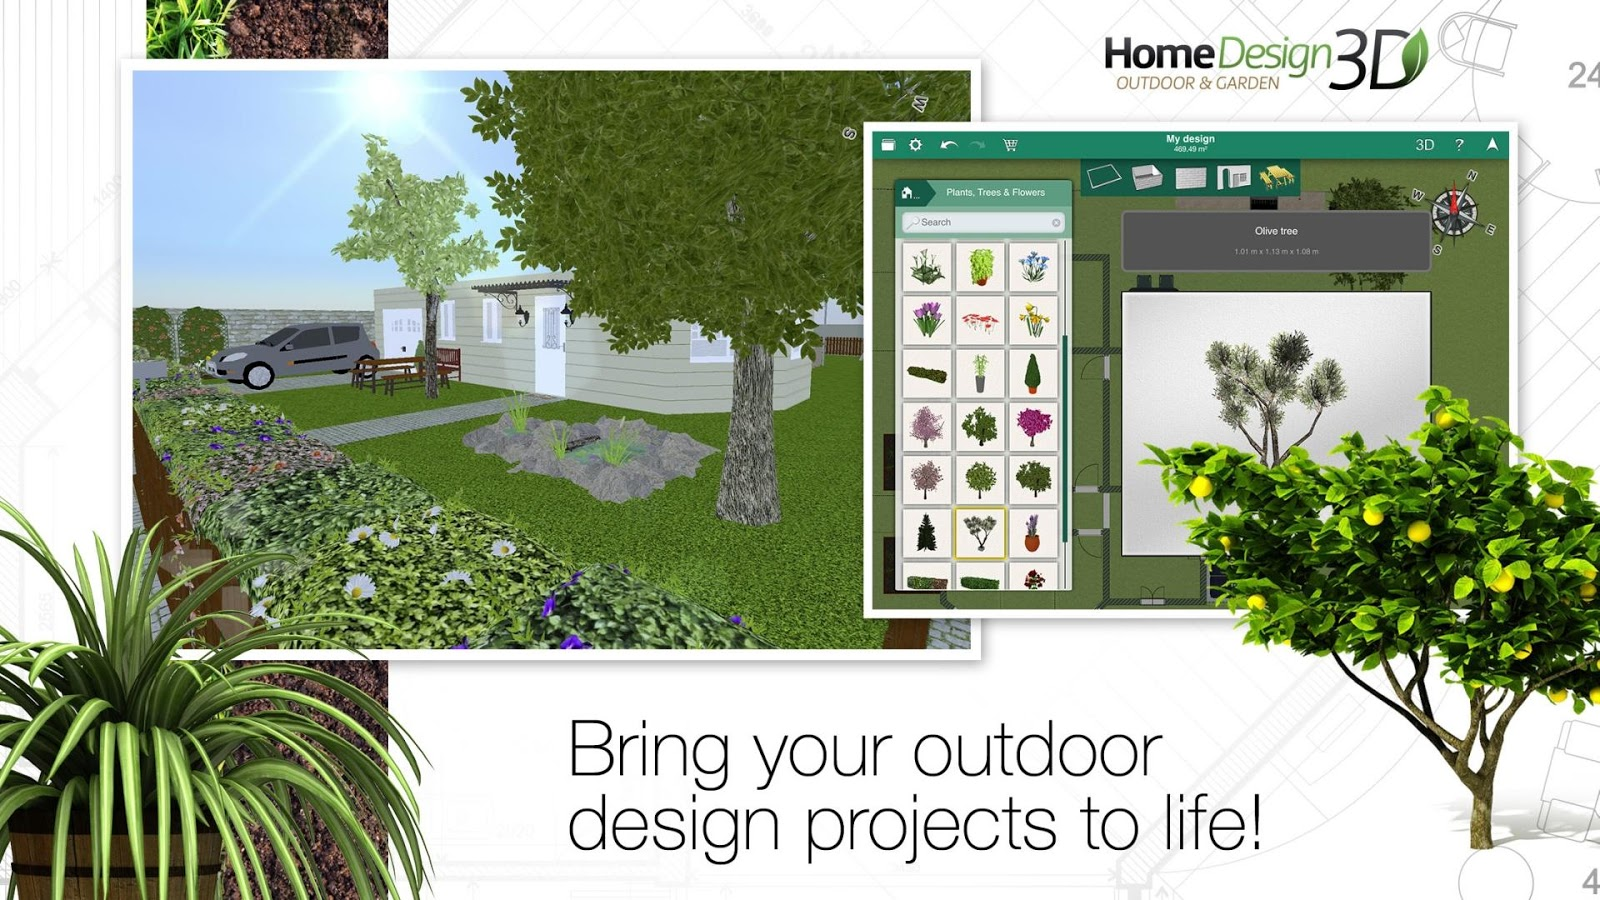 Home design 3d outdoor garden slides into the play store for Garden design 3d mac